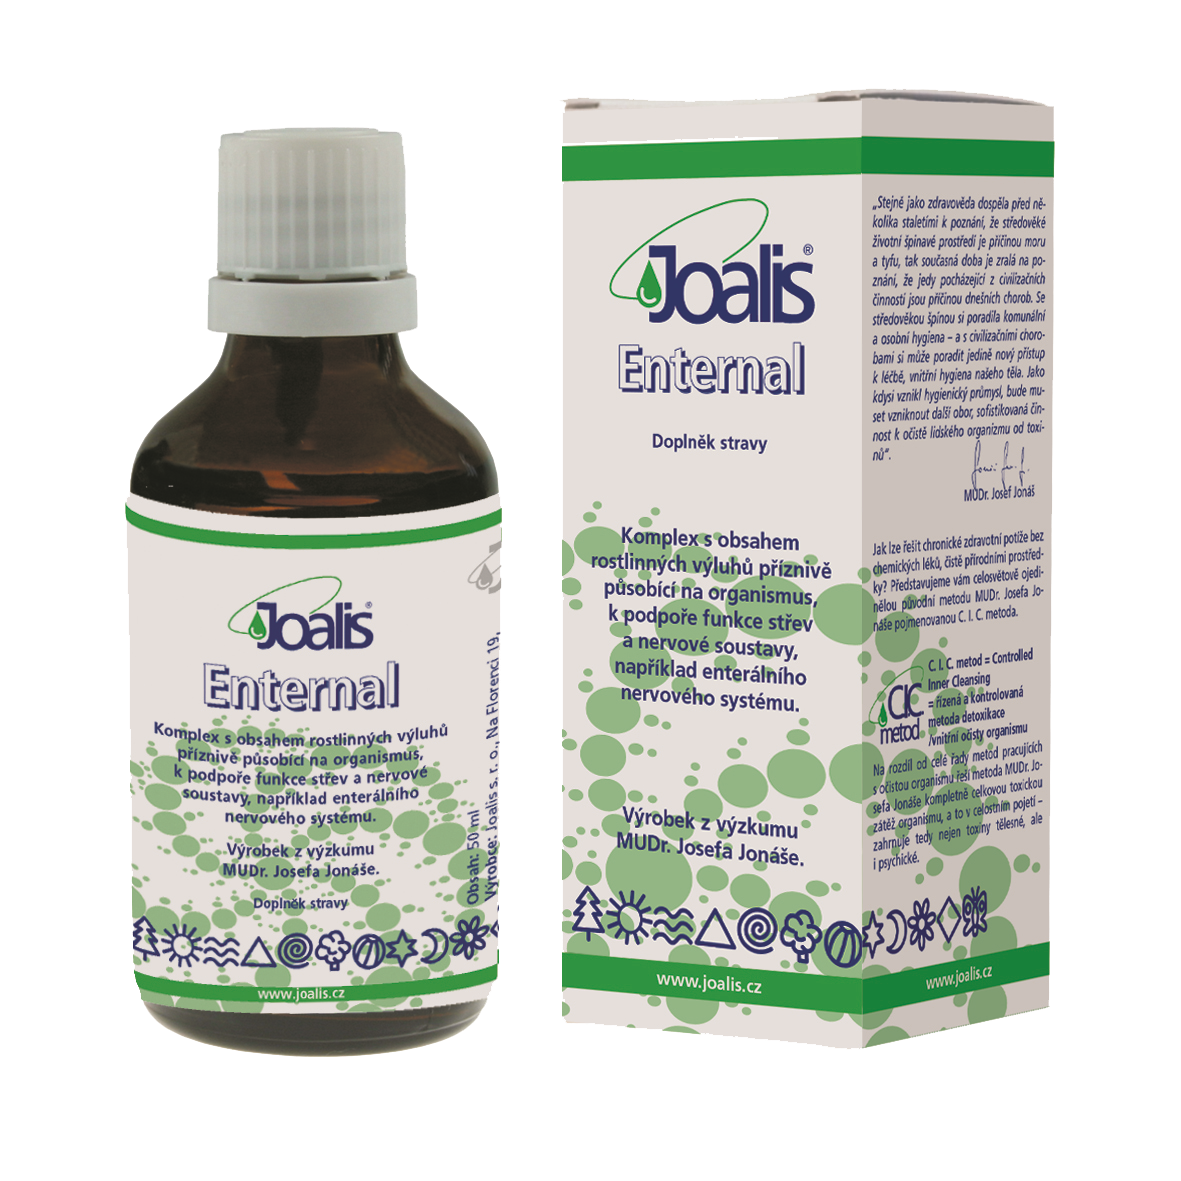 Joalis Enternal, 50ml